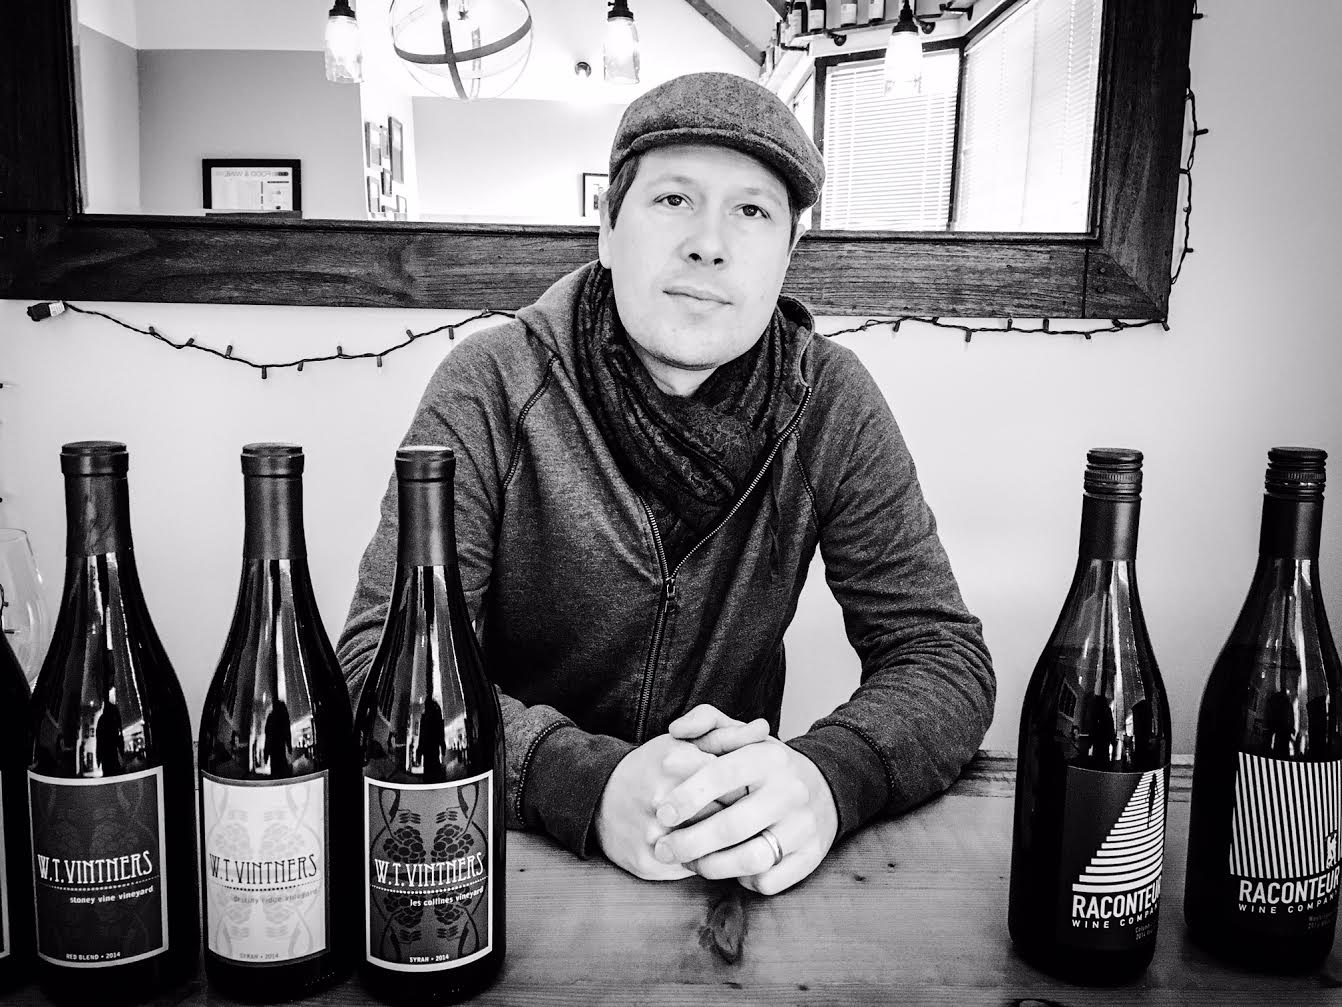 Great shot here of Jeff Lindsay-Thorsen and his fantastic new release wines